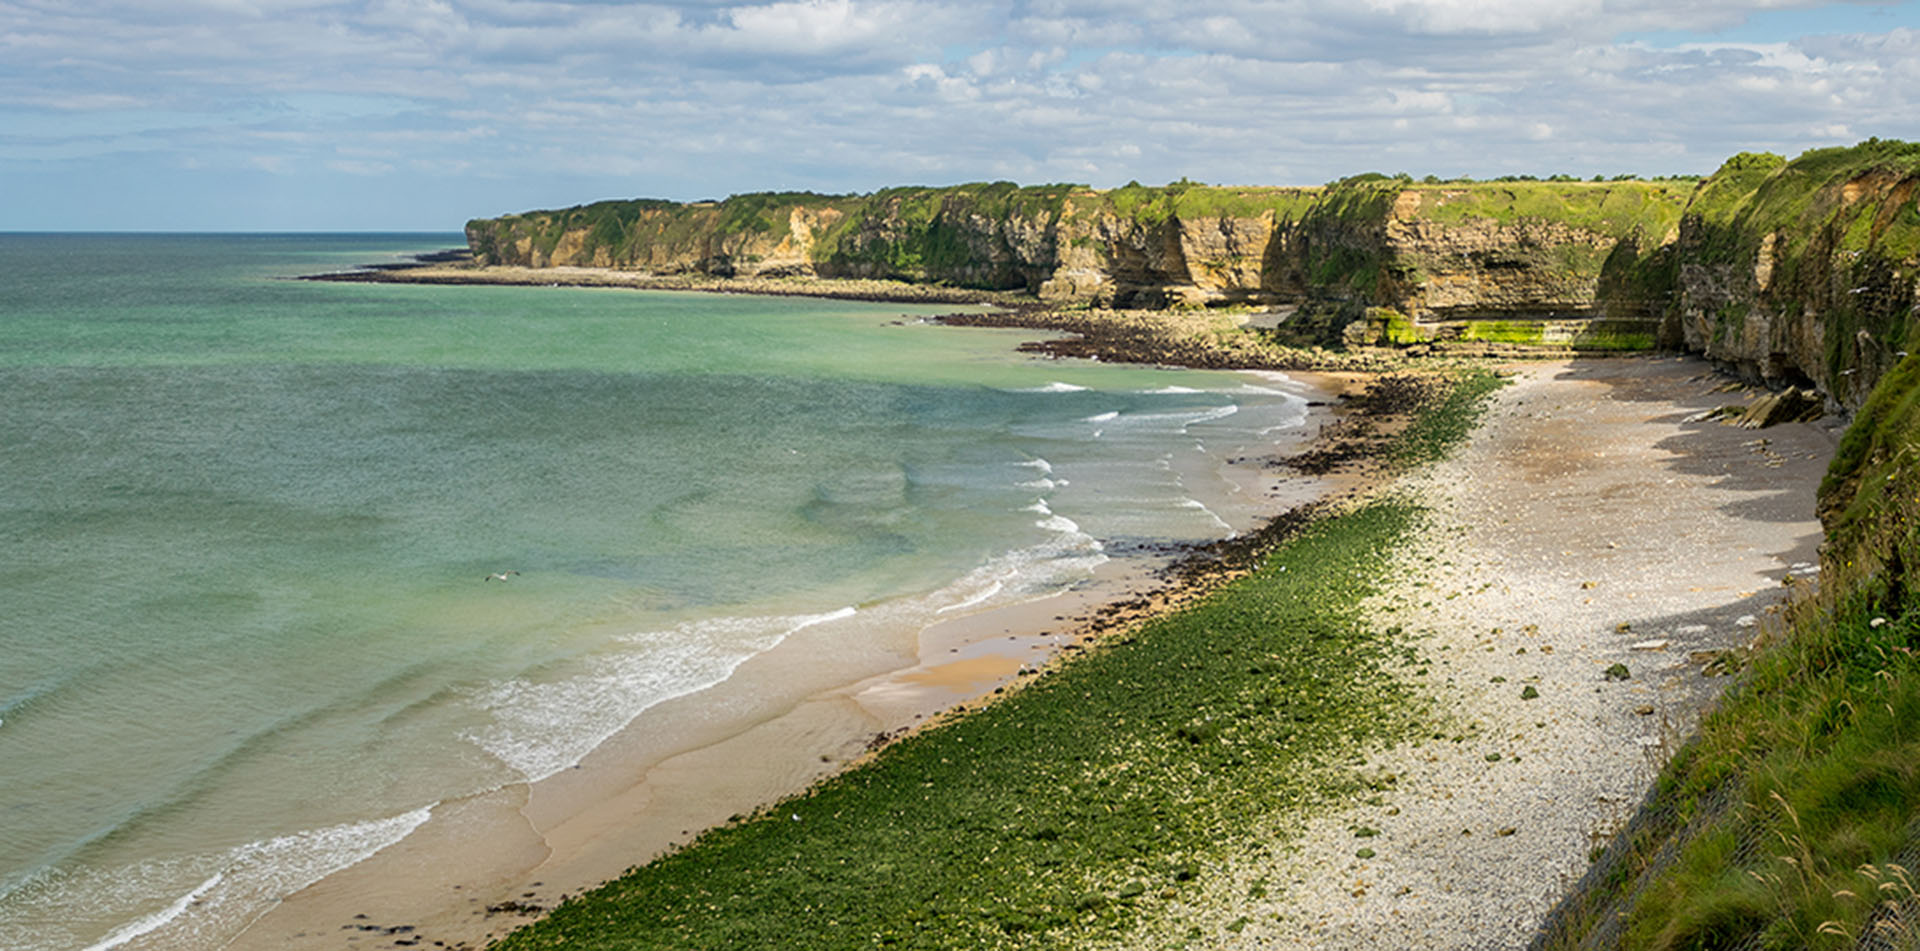 Pointe du Hoc Beach, Normandy, France